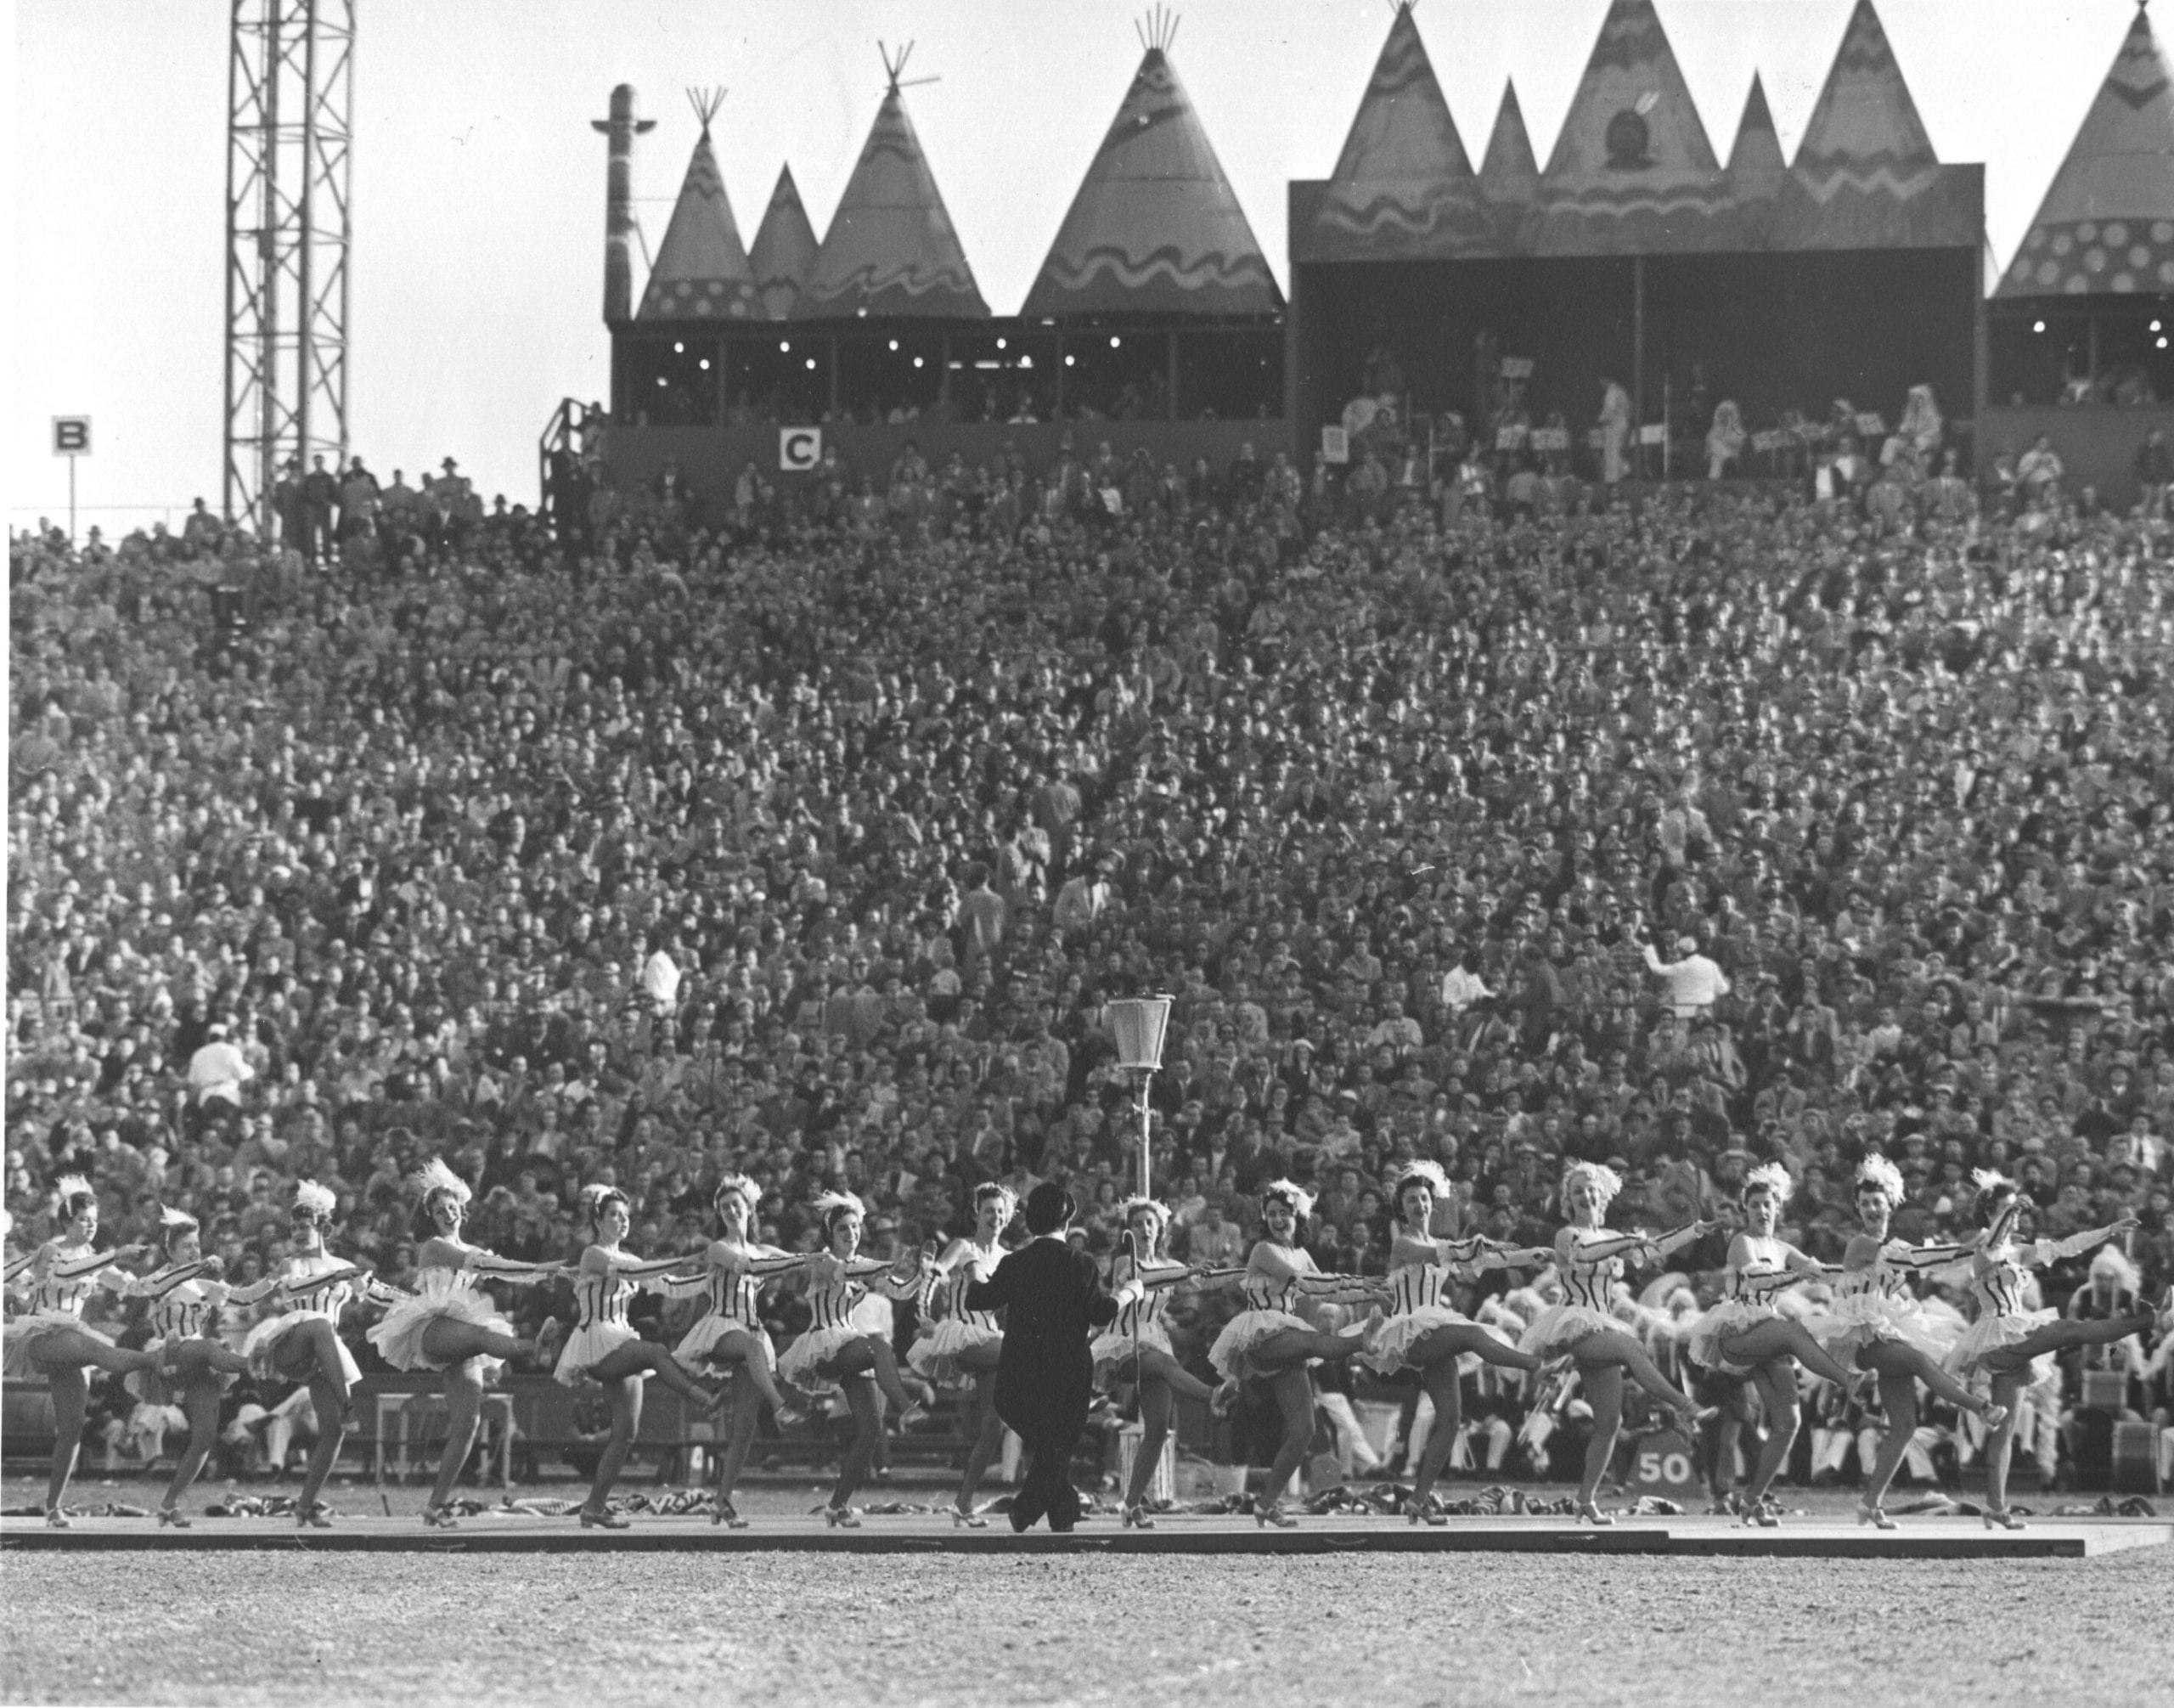 Photograph of  the  Halftime Show at a Washington Redskins Game, November 14, 1954